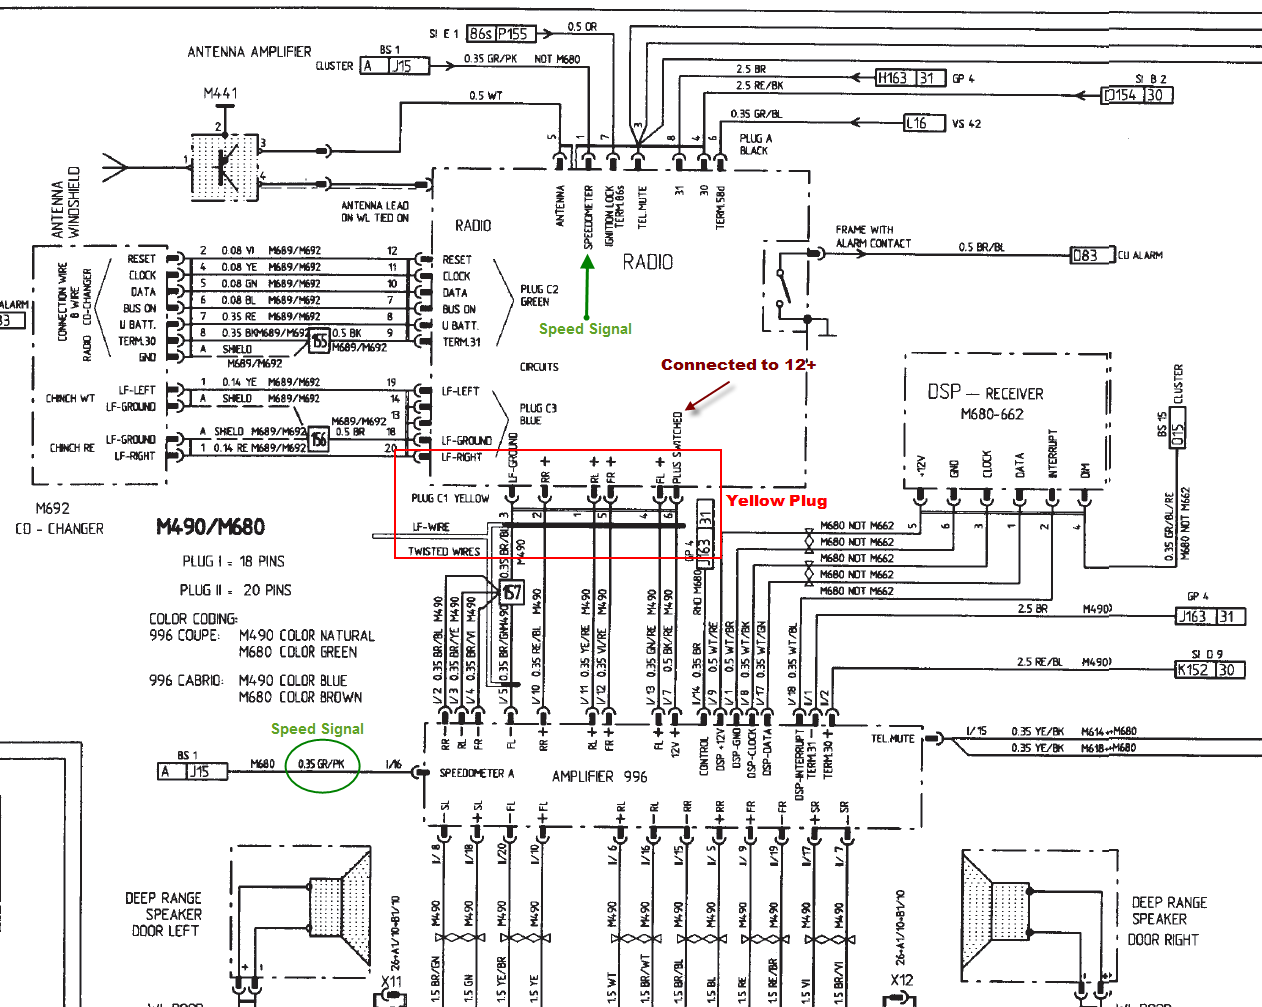 i ve finally joined the 996 turbo club page 2 6speedonline rh 6speedonline com 2004 Porsche Cayenne Seat Wiring-Diagram 2004 Porsche Cayenne Seat Wiring-Diagram